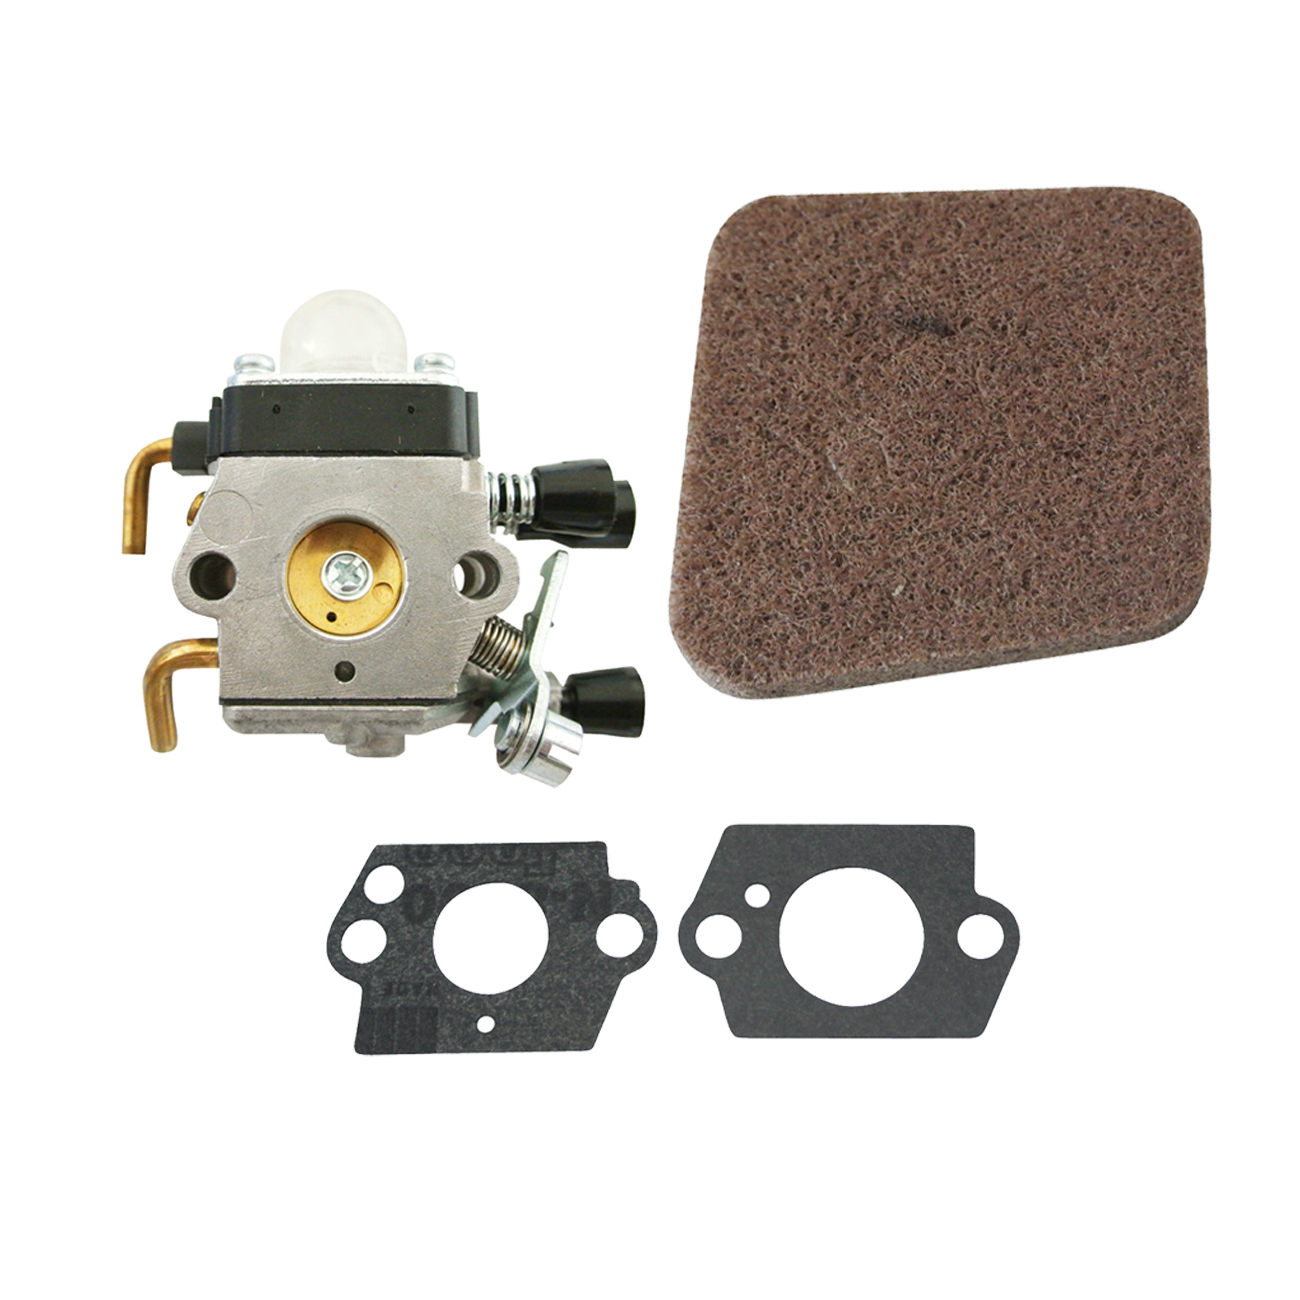 <font><b>Carburetor</b></font> & Gasket & Air Filter <font><b>For</b></font> <font><b>Stihl</b></font> <font><b>FS38</b></font> <font><b>FS45</b></font> FS46 Trimmers image